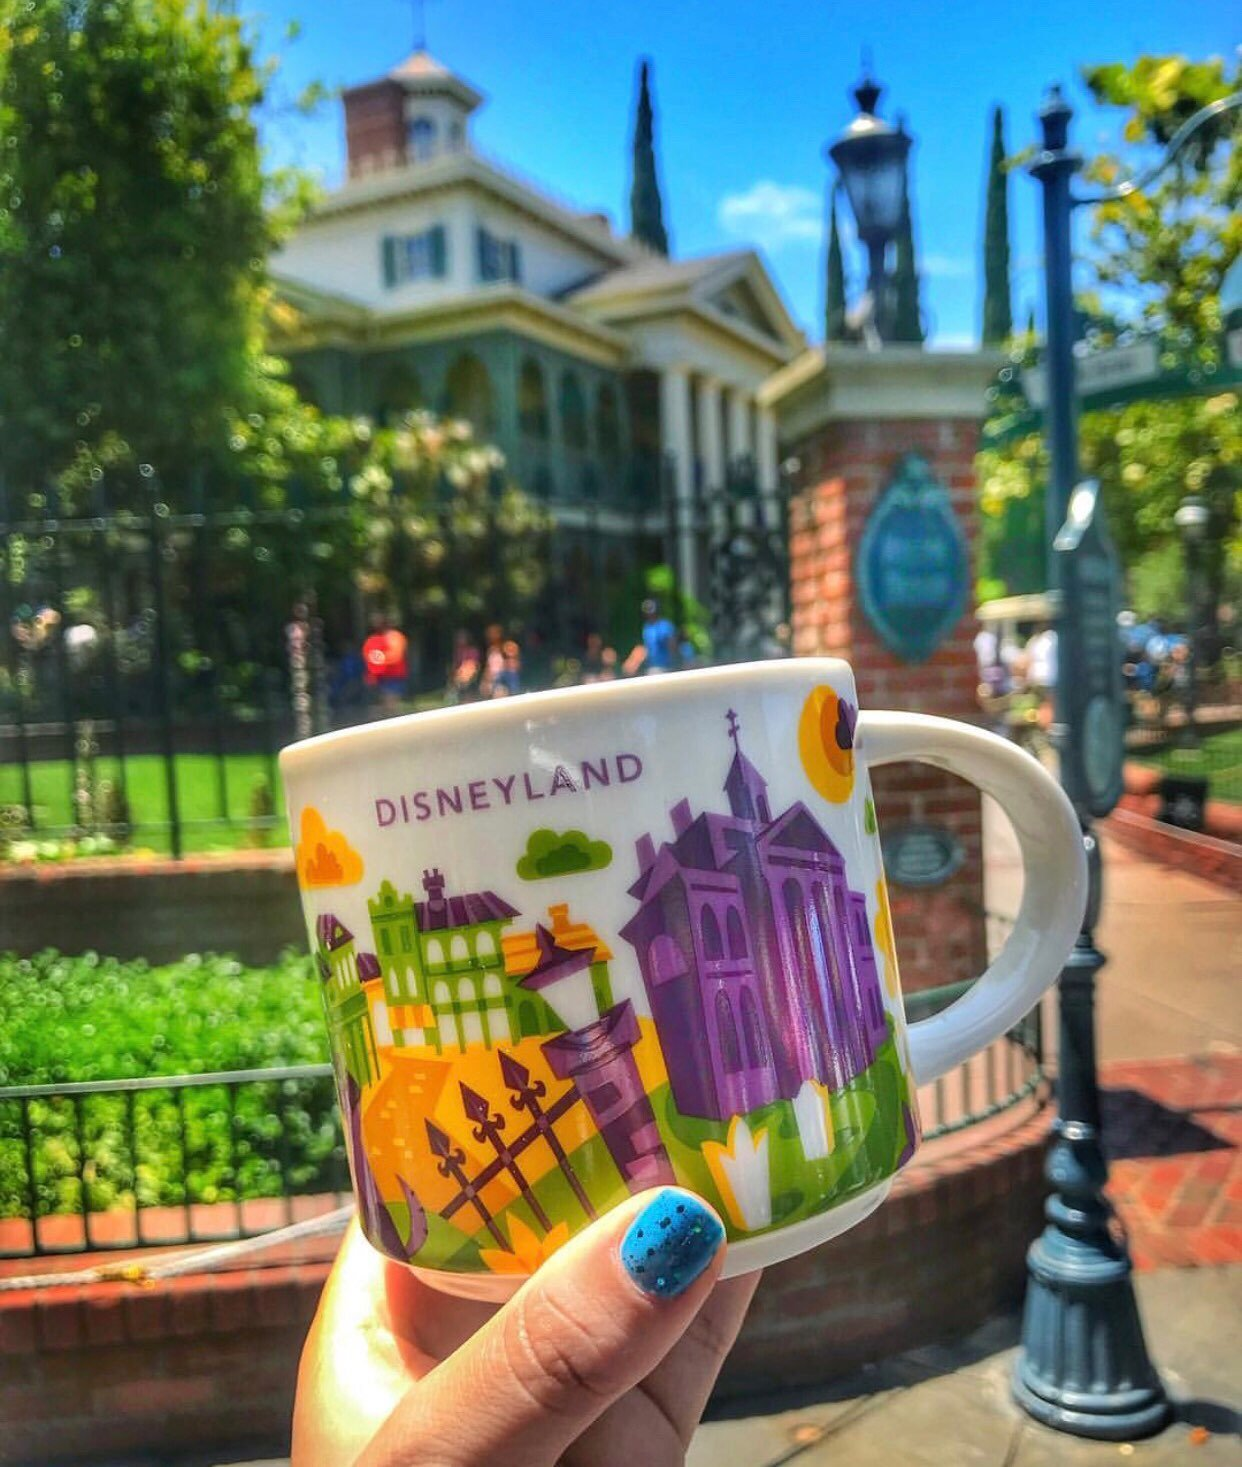 Disneyland Starbucks Theme Park Mugs (New Orleans Square)